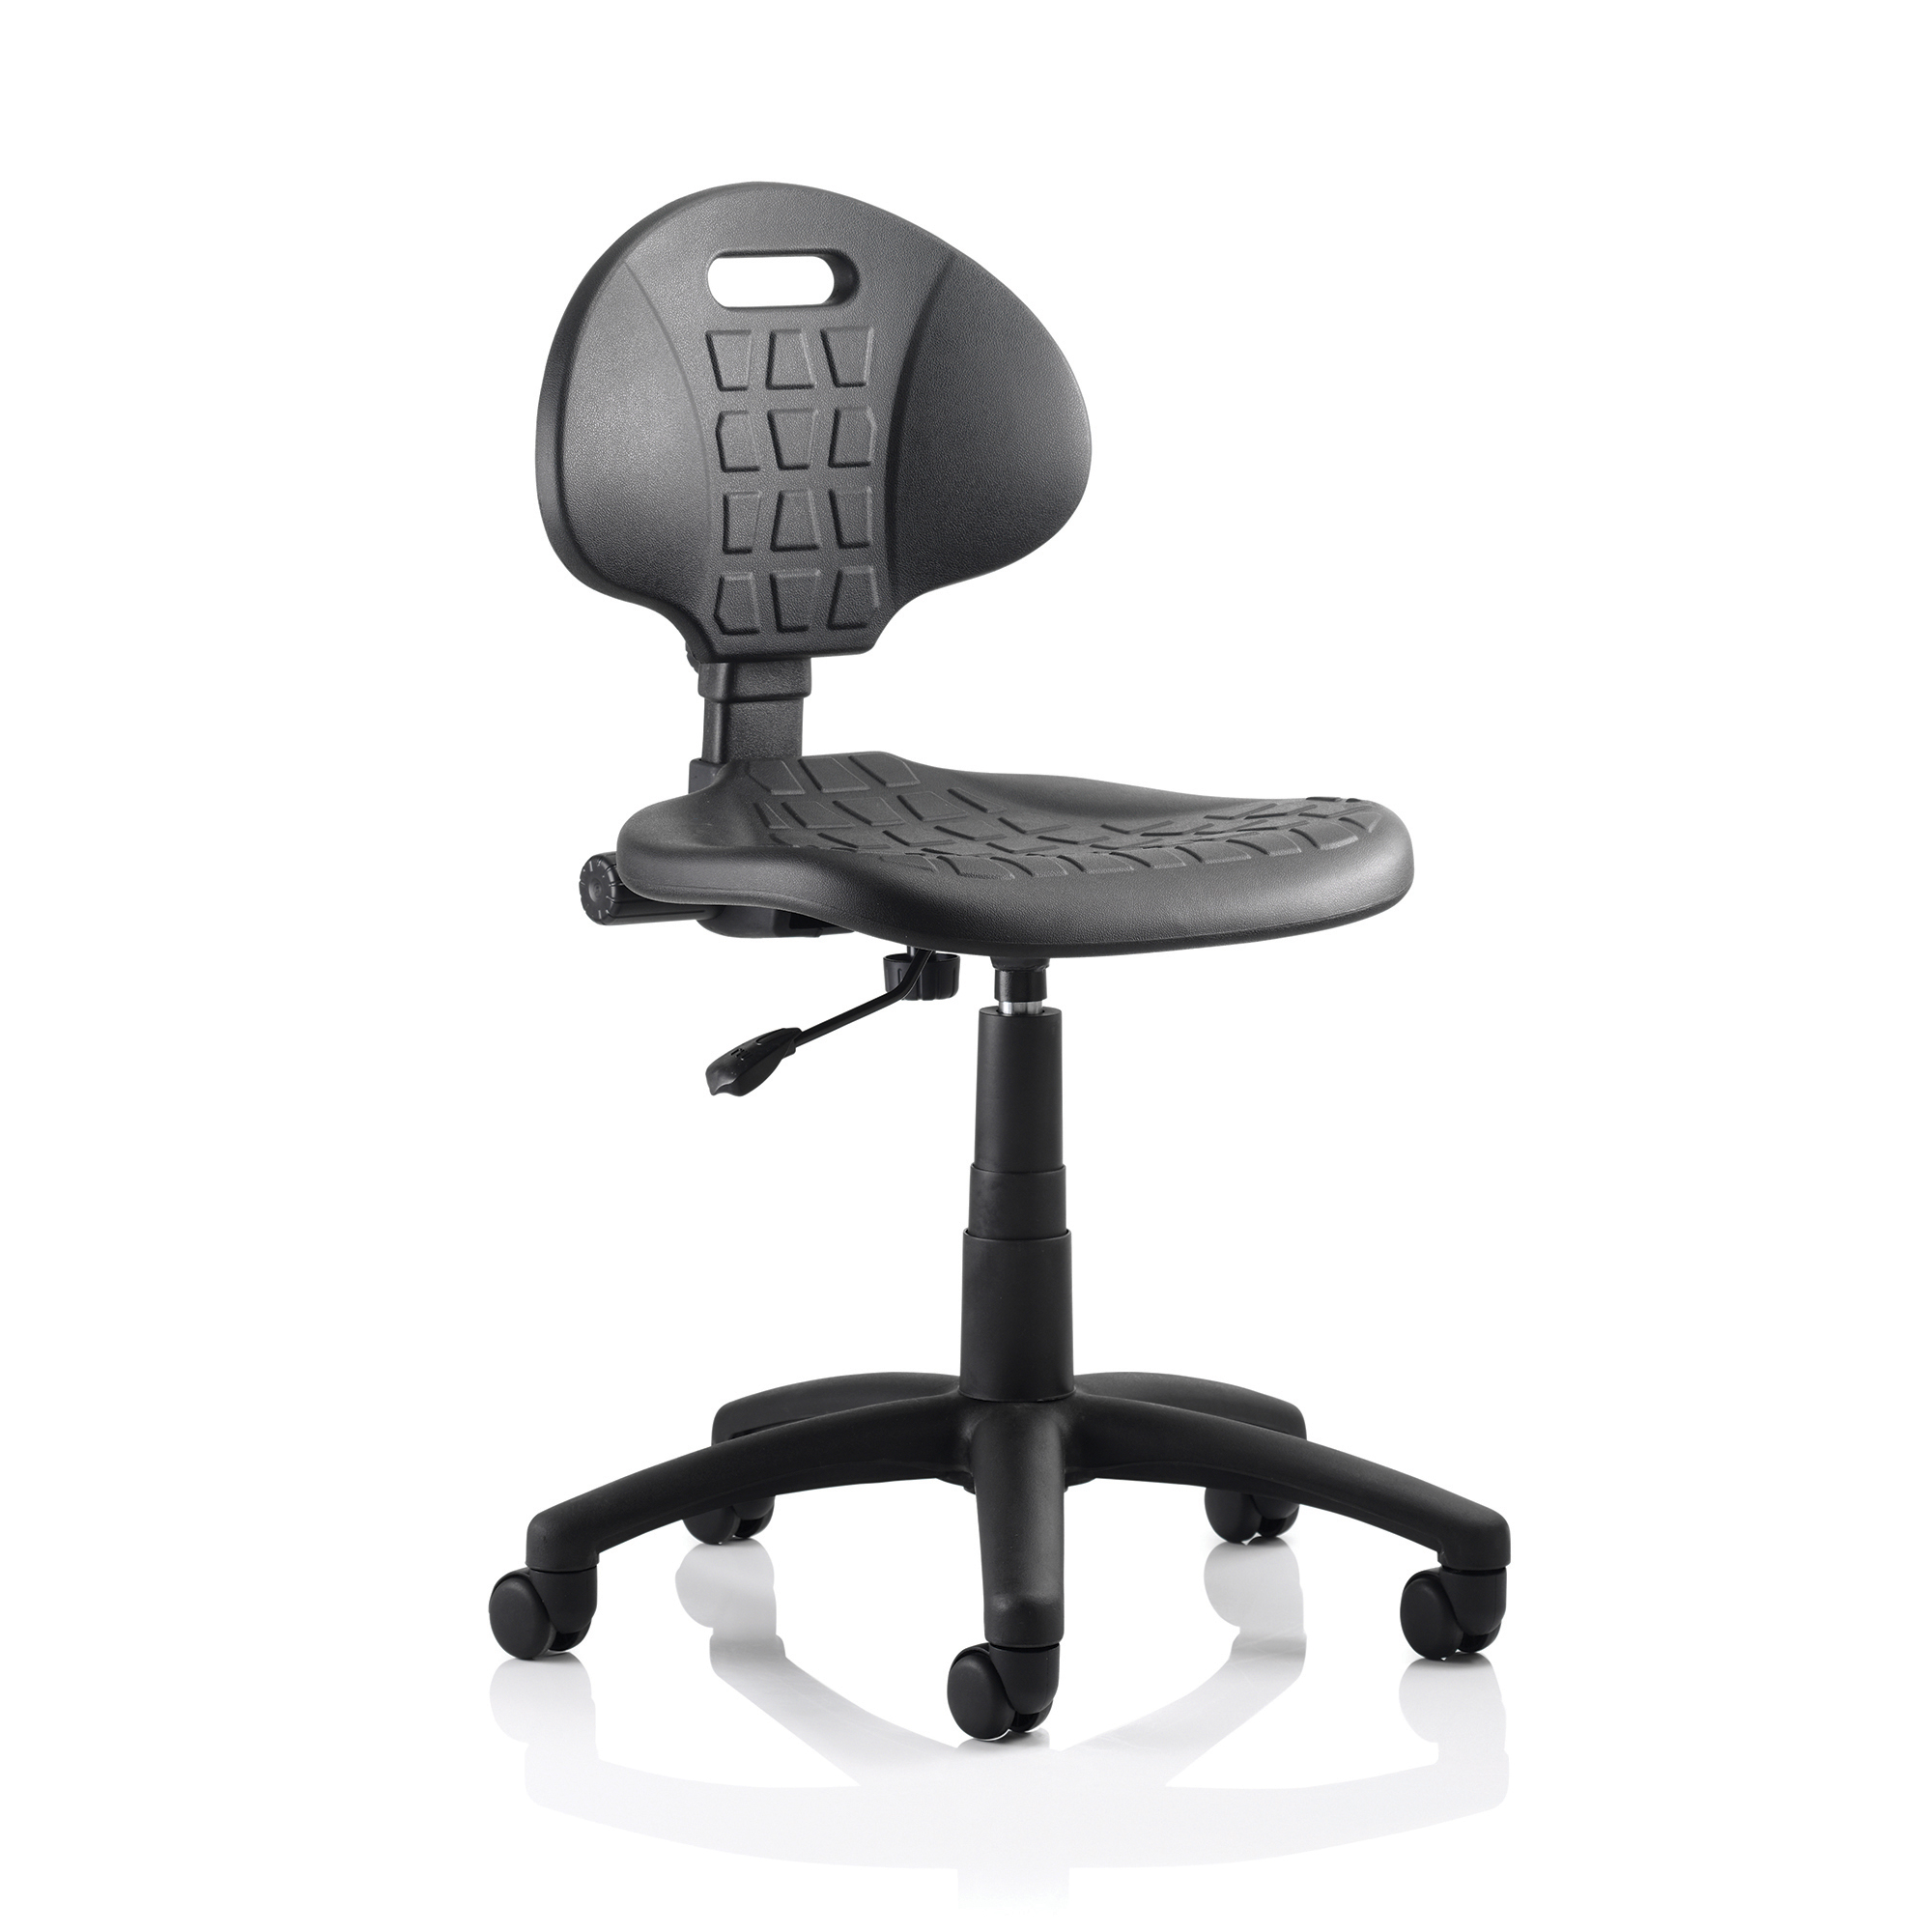 Trexus Malaga Task Operator Chair Wipe Clean Polyurethane Seat And Back Without Arms Black Ref OP000088